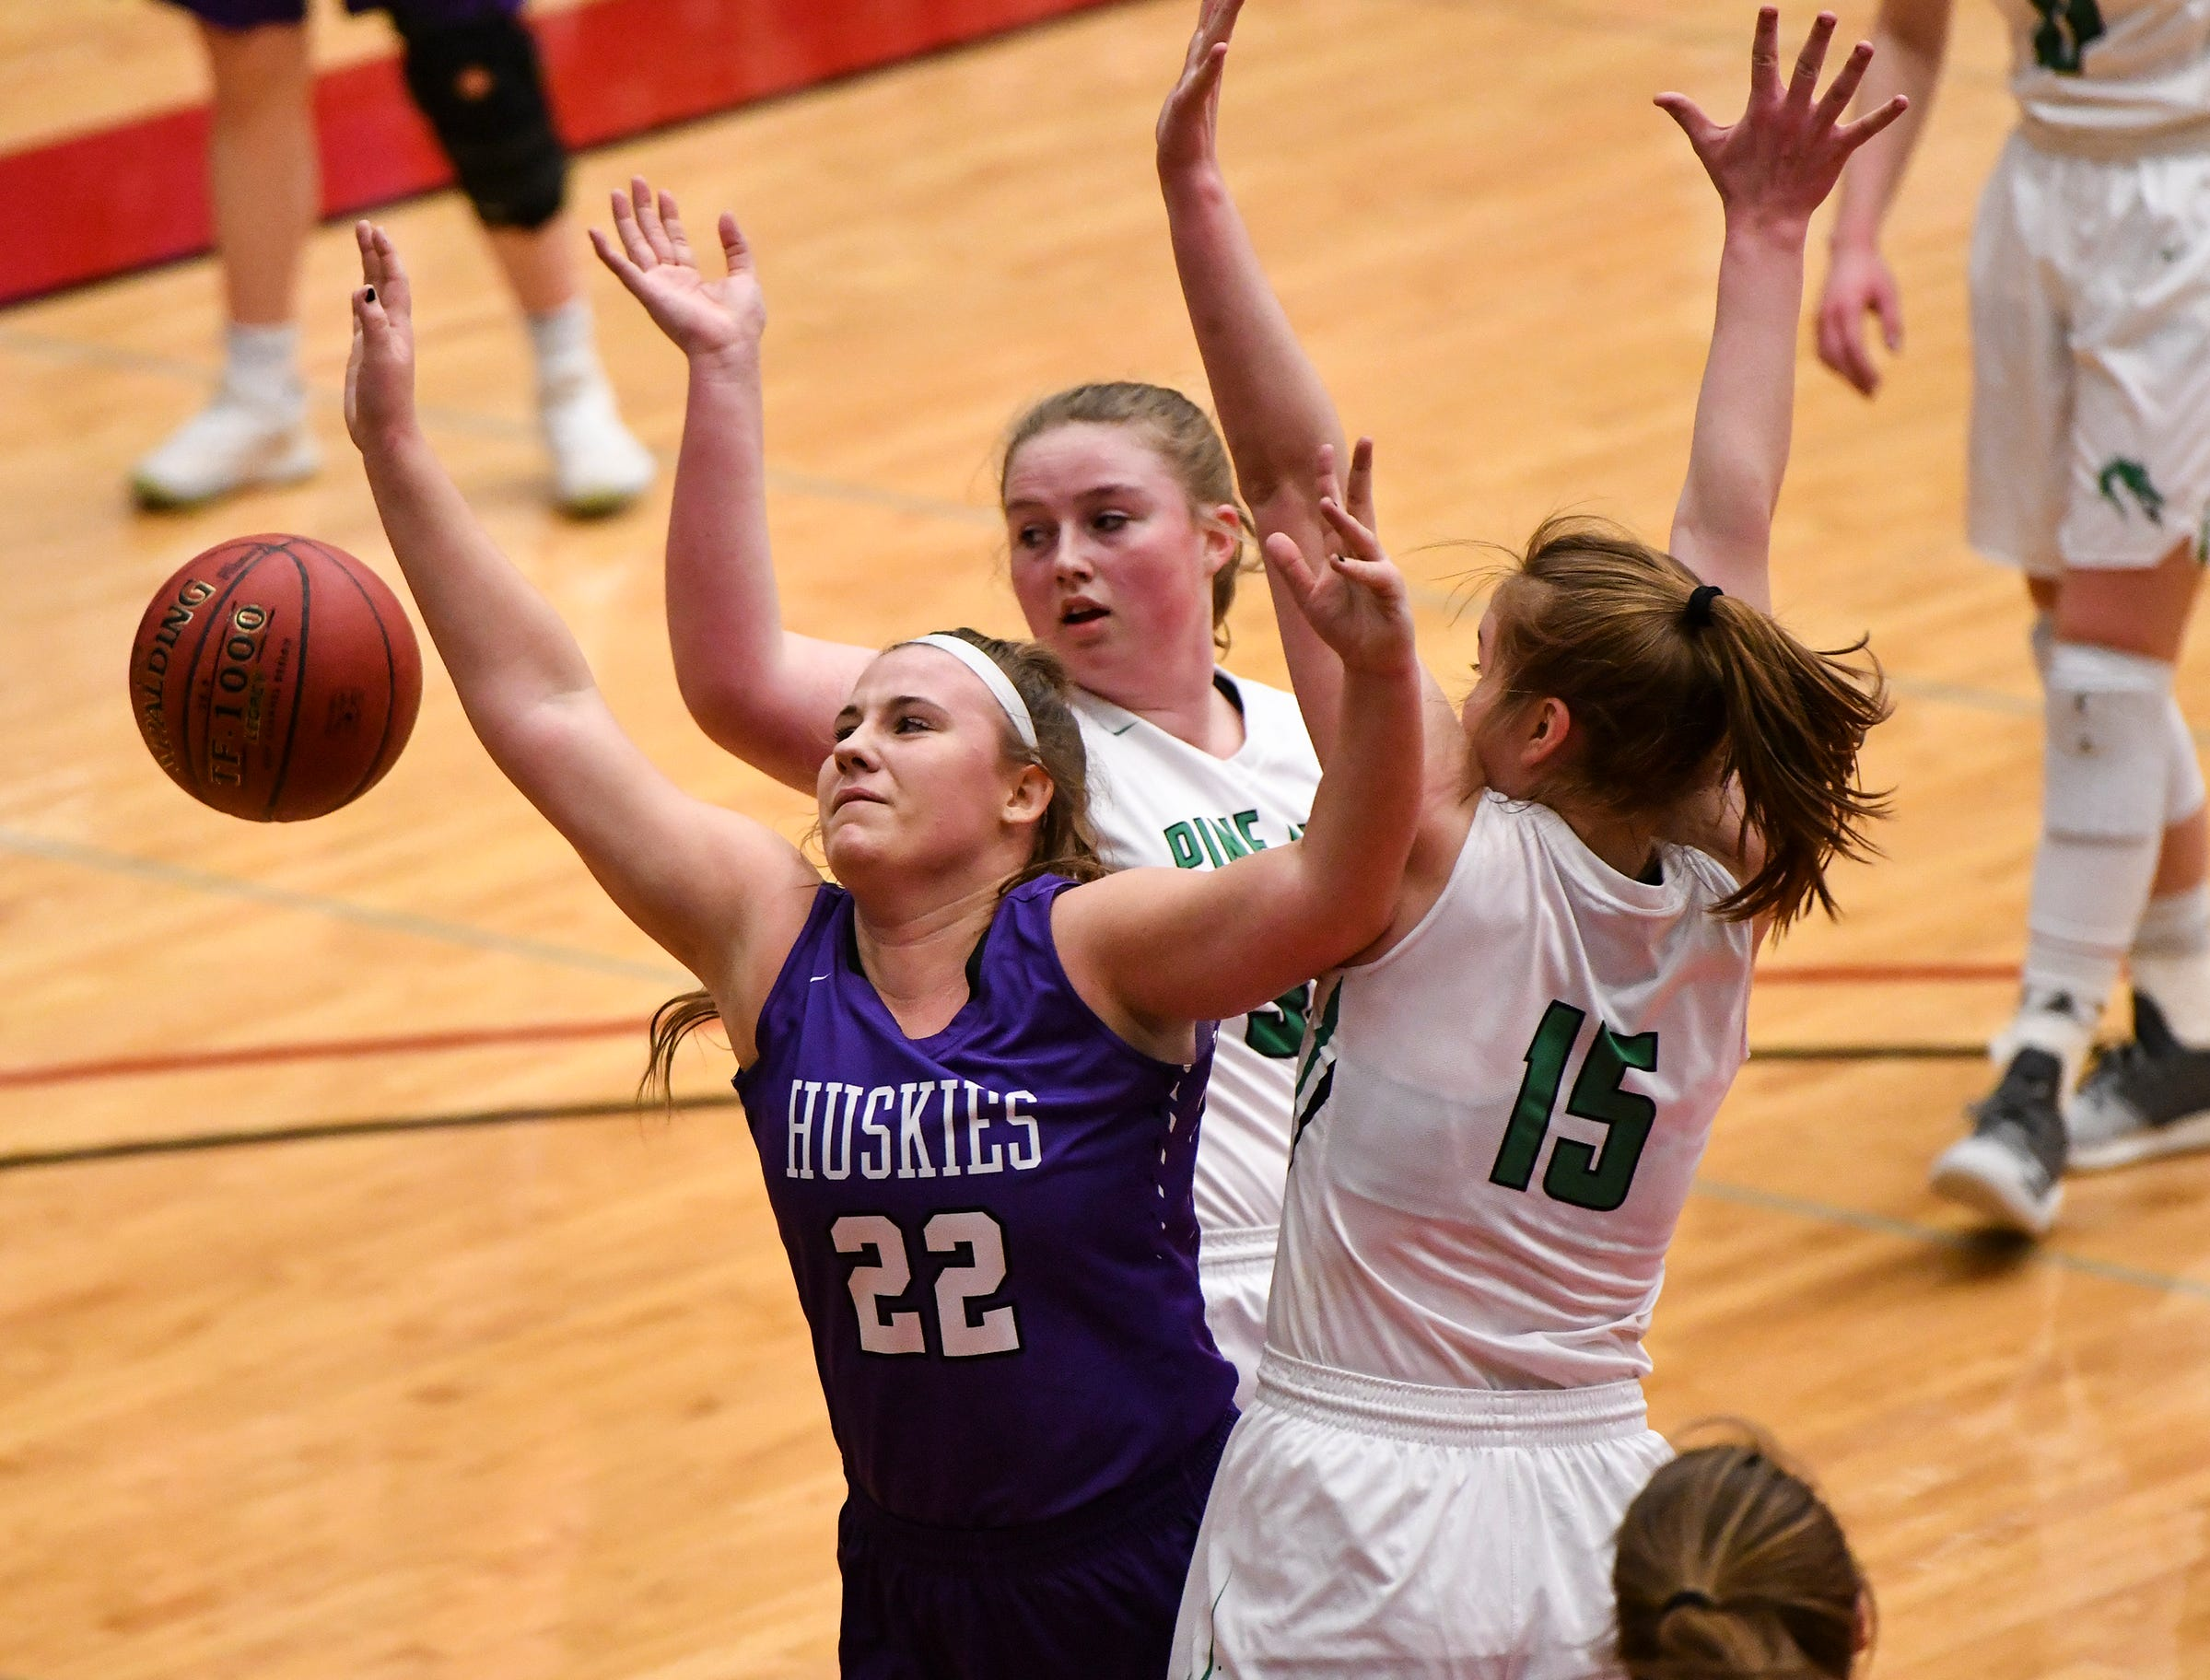 Albany's Breanna Mellesmoen drives to the basket during the Section 6-2A championship game against Pine City Friday, March 8, at Halenbeck Hall in St. Cloud.